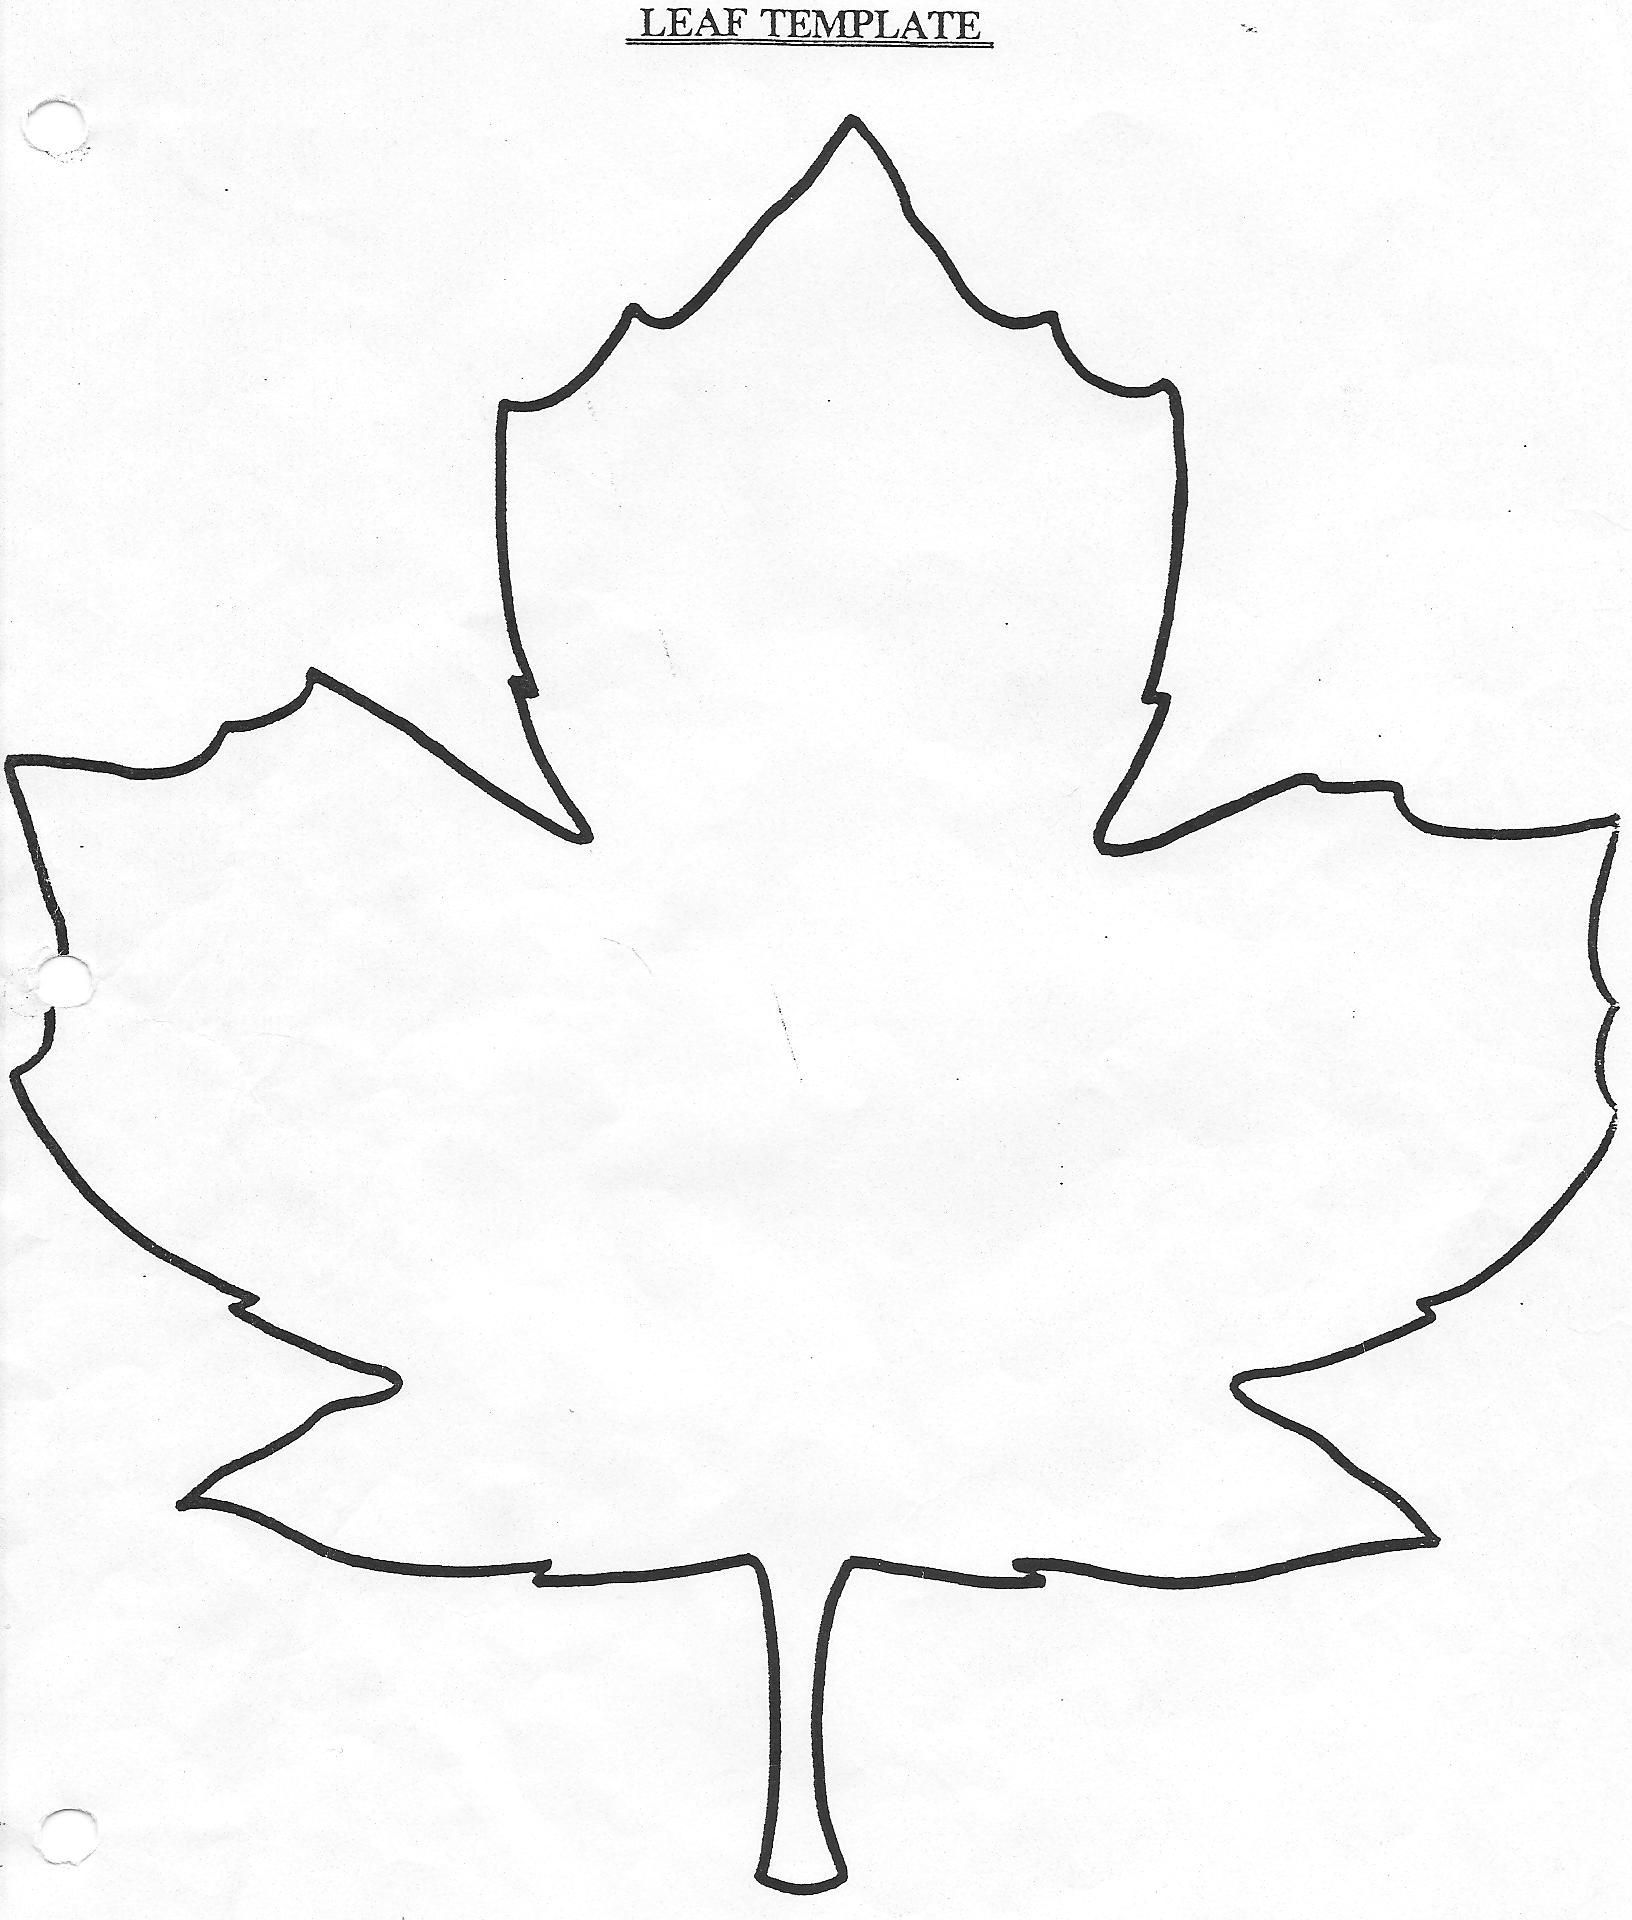 008 Archaicawful Blank Leaf Template With Line Photo  Lines PrintableFull